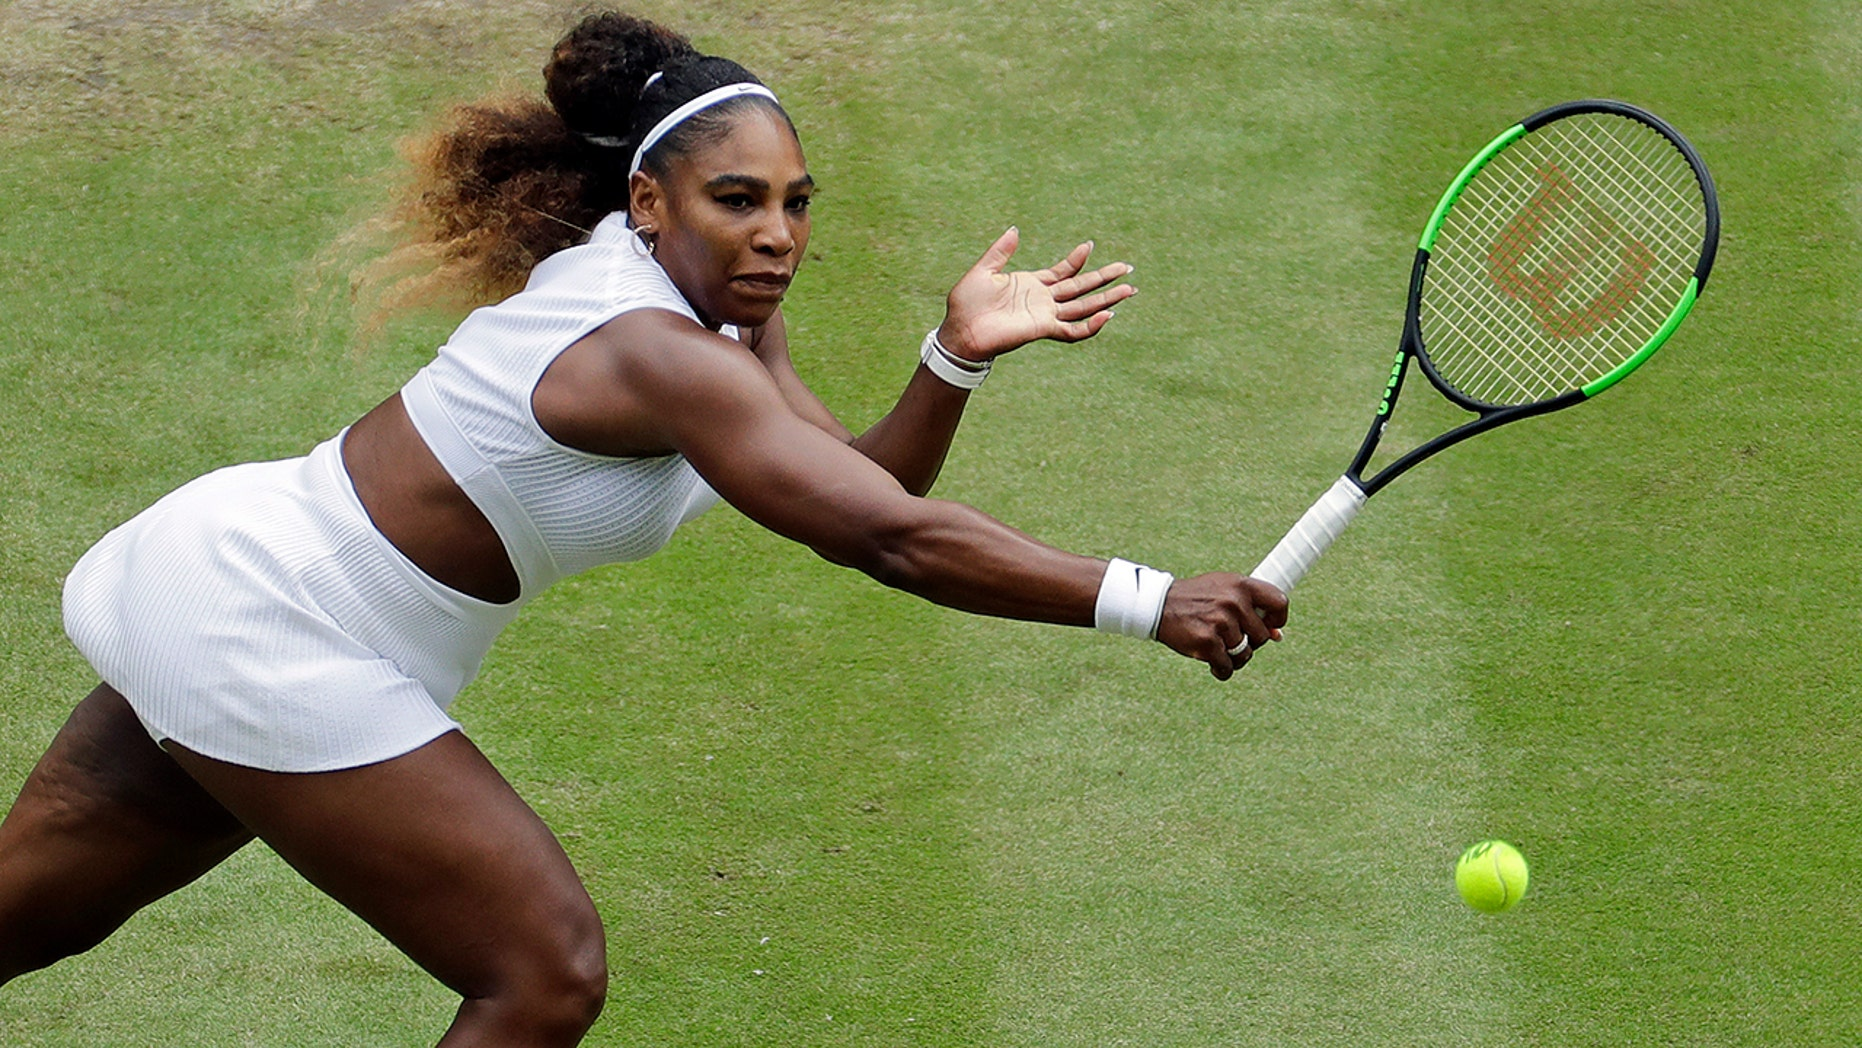 Wimbledon 2019 Final: How to Watch Serena Williams vs